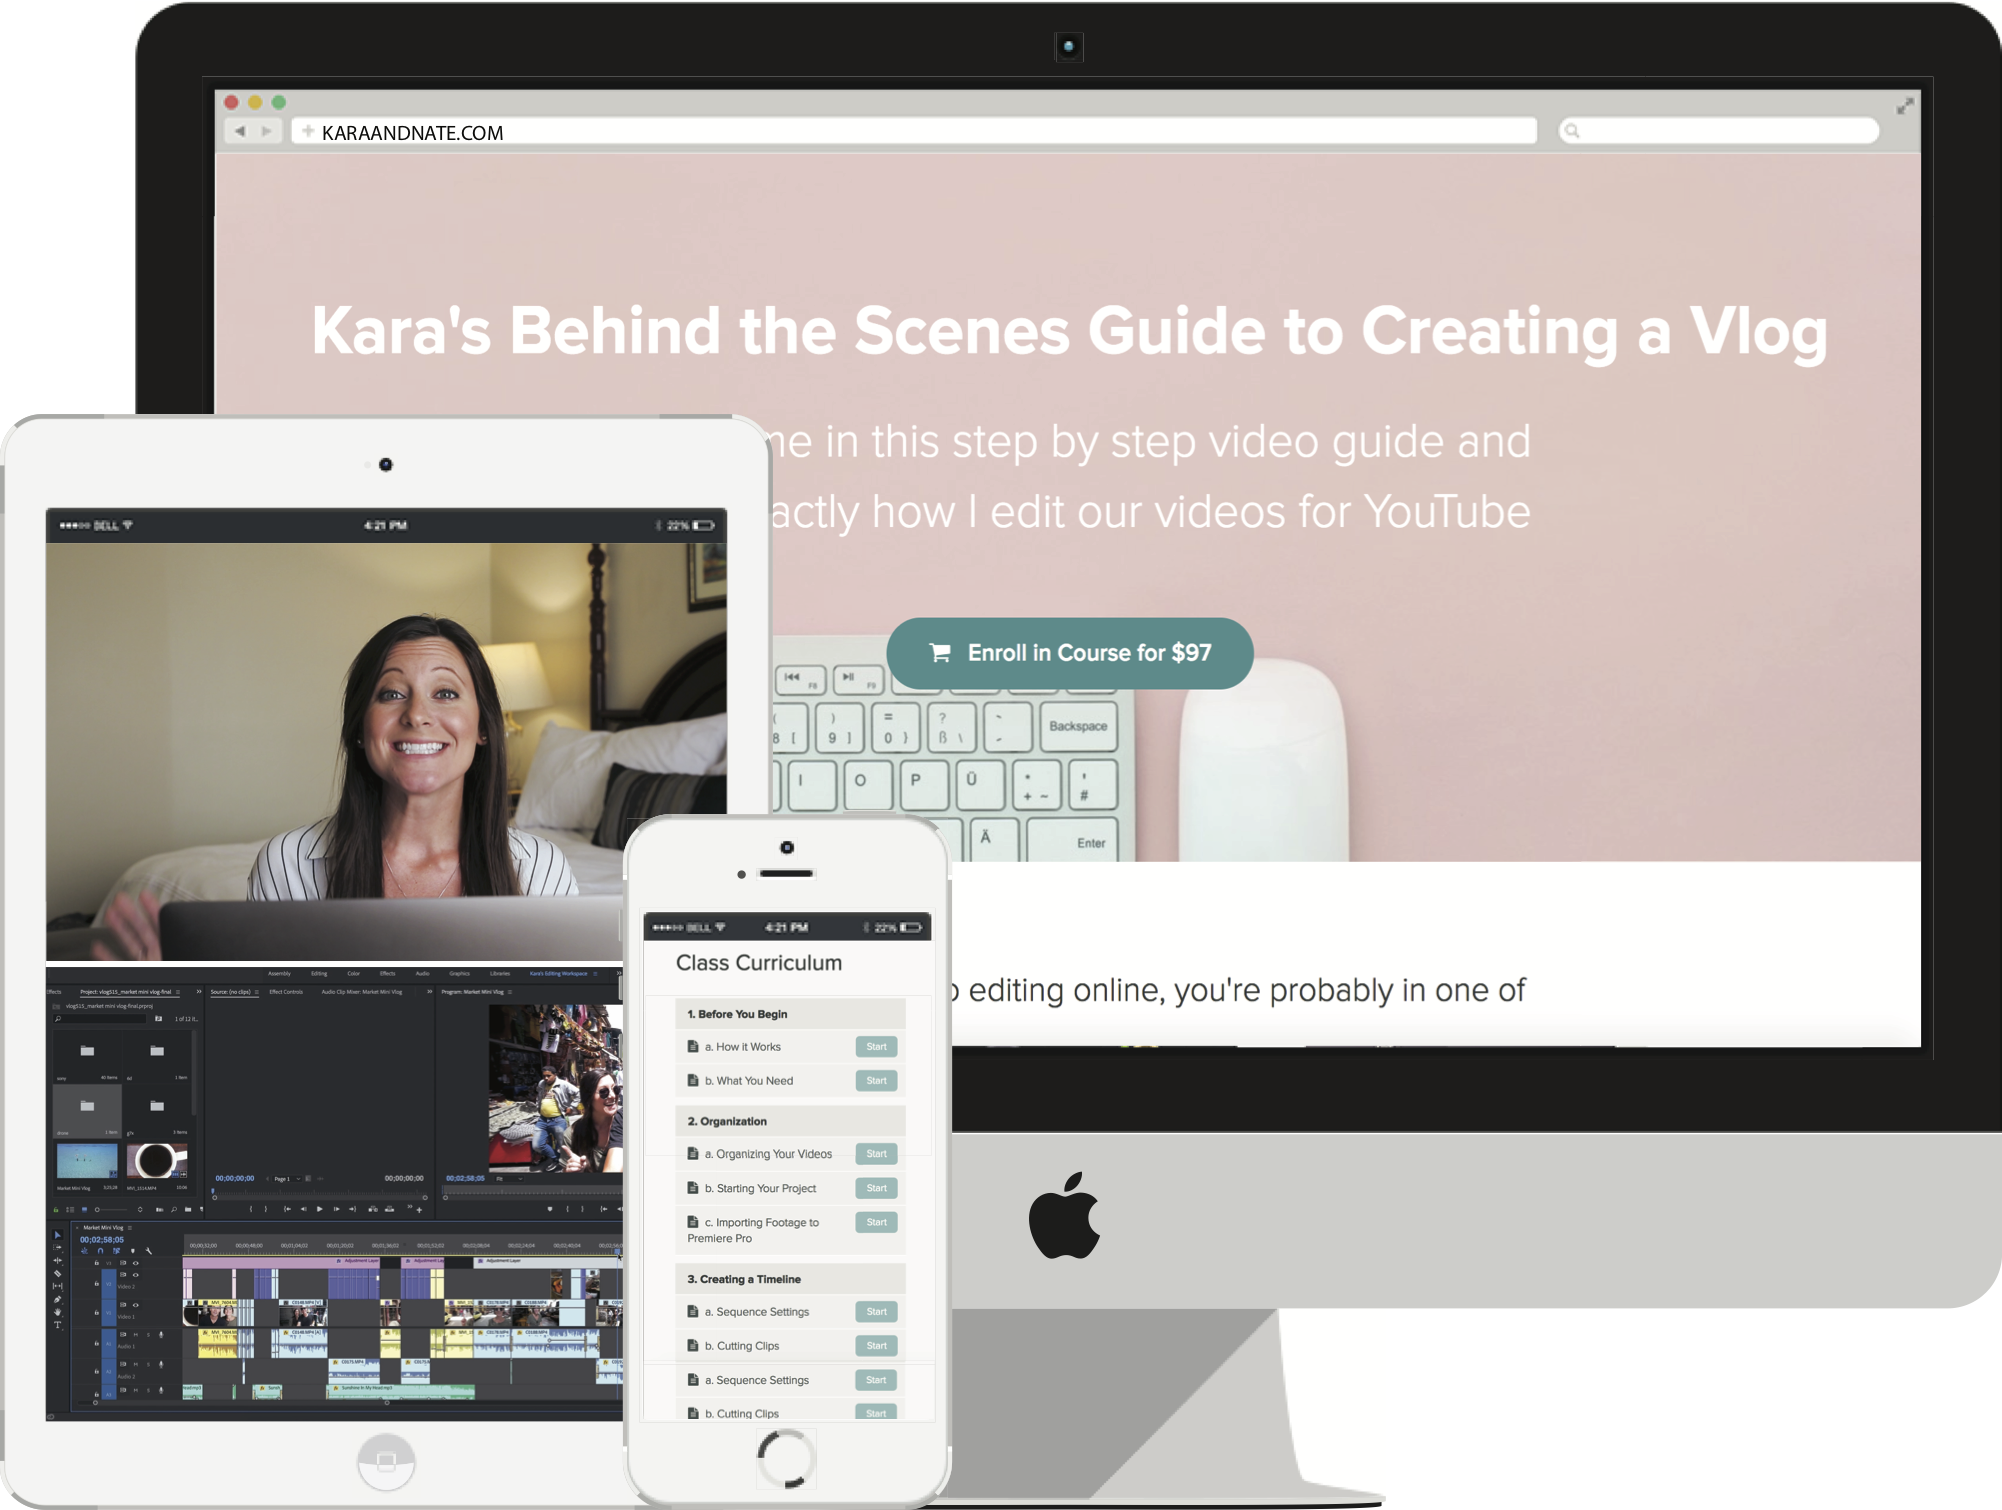 Behind the Scenes Guide to Creating a Vlog